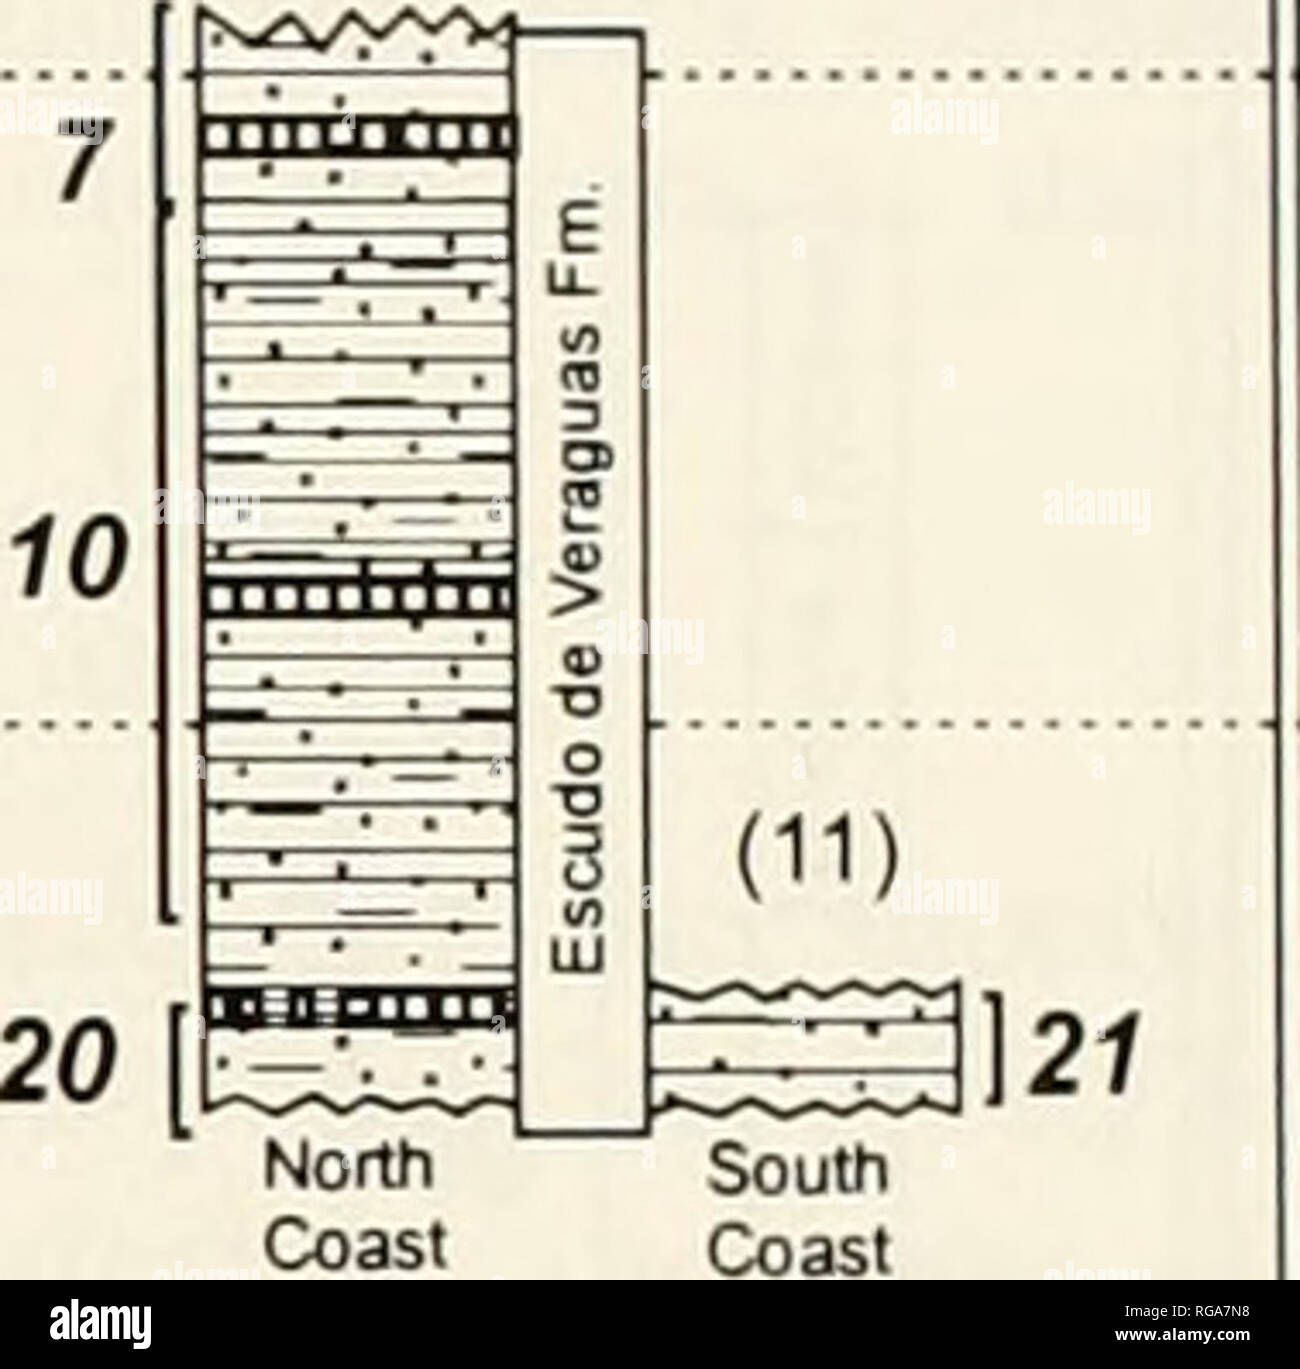 . Bulletins of American paleontology. 27 VALIENTE PENINSULA Blufl (12) 15 29 Finger Island (14) 30 ESCUDO DE VERAGUAS ISLAND (10). Text-figure 4.—Summary of the stratigraphy of the Bocas del Toro Basin for all sections sampled for this paper. Section numbers and faunule numbers shown as in Text-figure 3. Finger Island on the Valiente Peninsula to Early Pleis- tocene (1.4 Ma) at Swan Cay; but the collections are more evenly distributed in age than in the Limon Basin (Text-fig. 4; Appendix B, this volume). The 46 collec- tions from the Canal Basin are all Late Miocene (Text- fig. 5), ranging fro - Stock Image